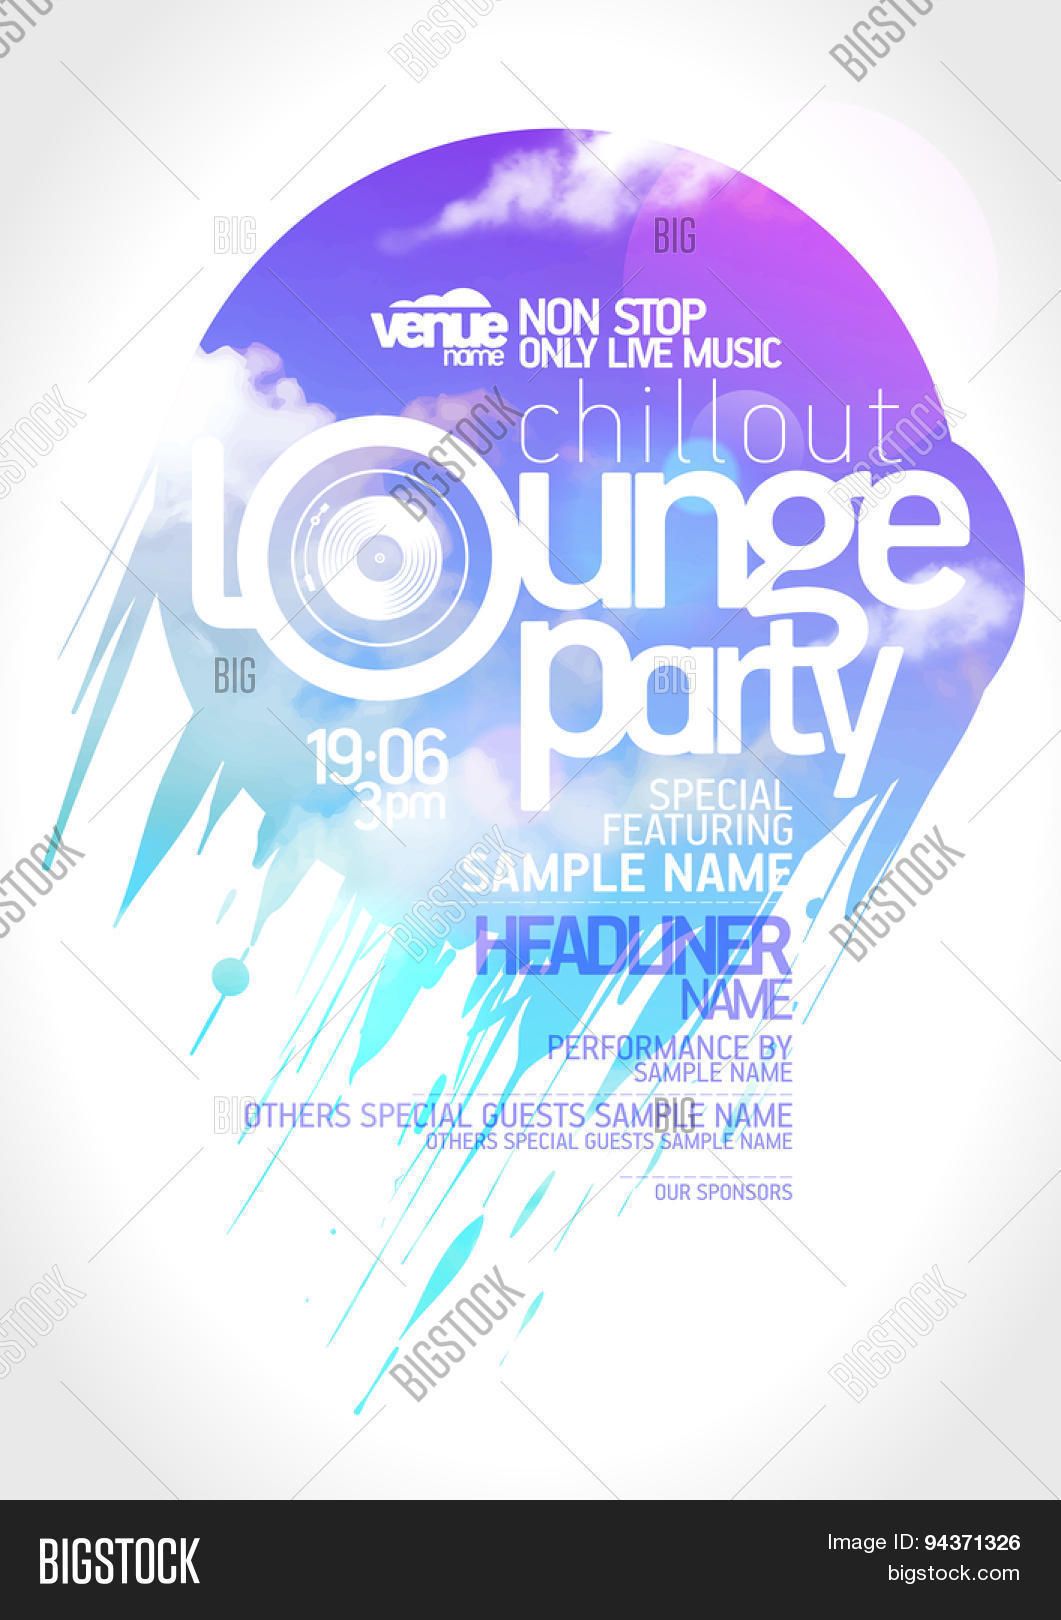 Art Lounge Party Vector Photo Free Trial Bigstock